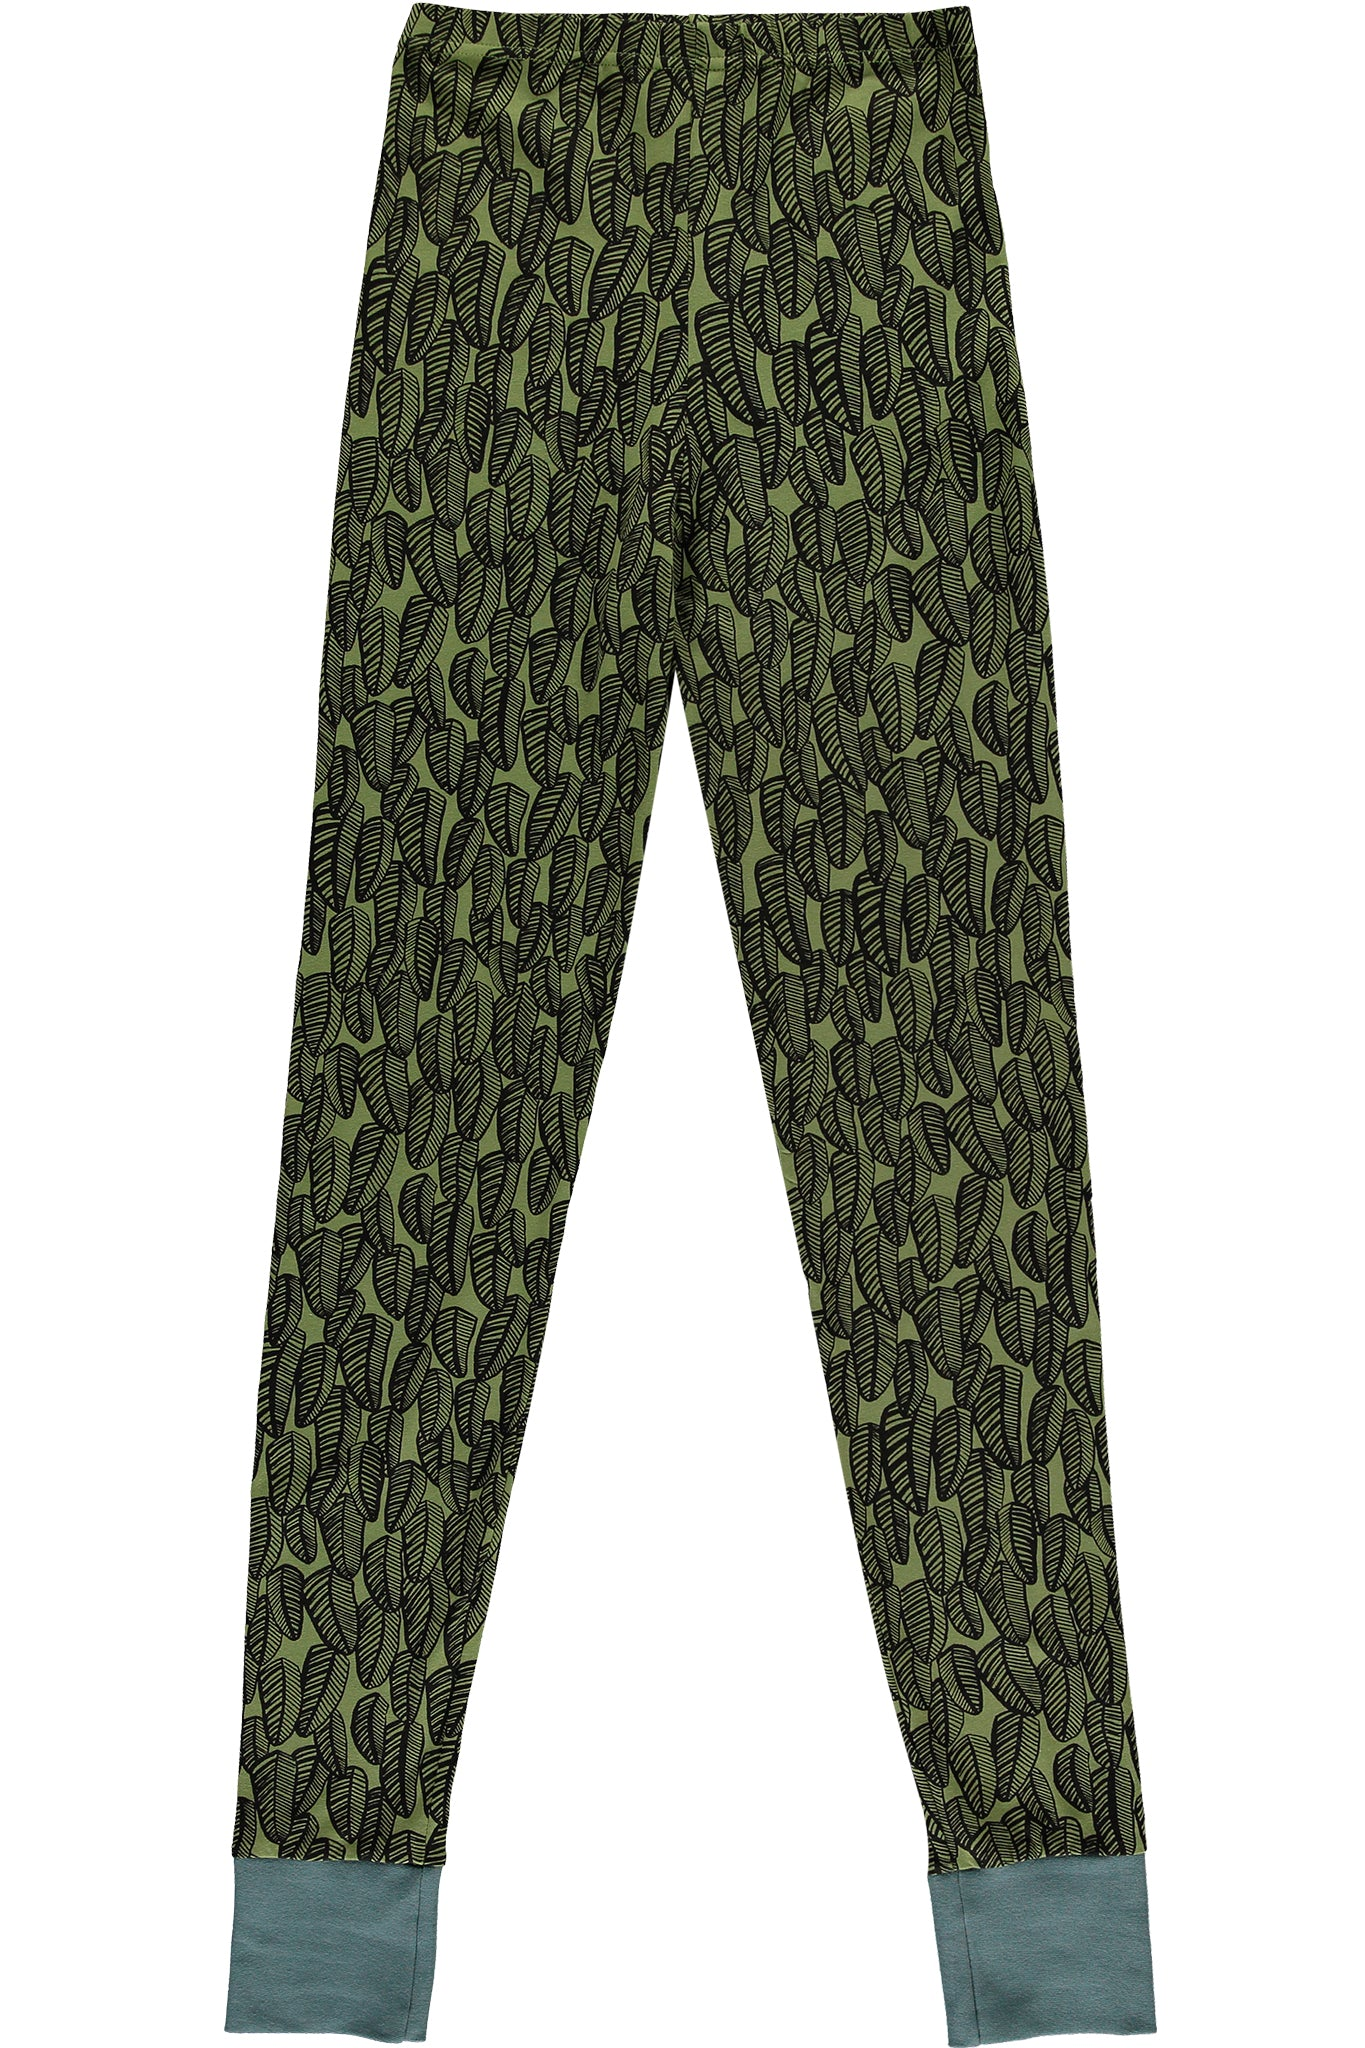 WOMEN'S SLIM JYMS - FEATHERS KHAKI